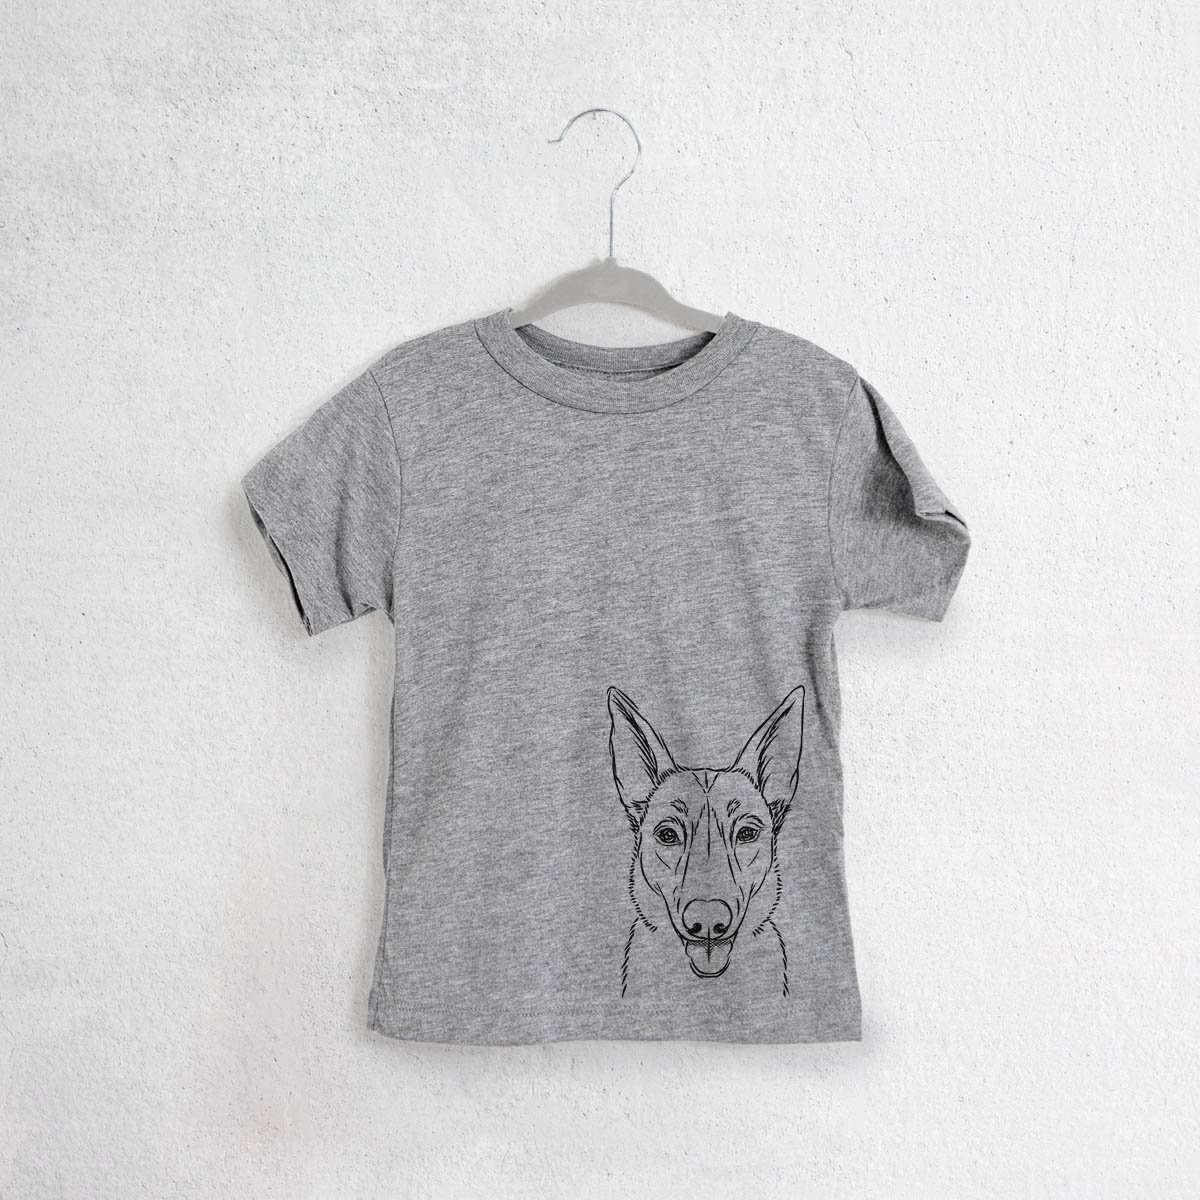 Lyric the Belgian Malinois - Kids/Youth/Toddler Shirt